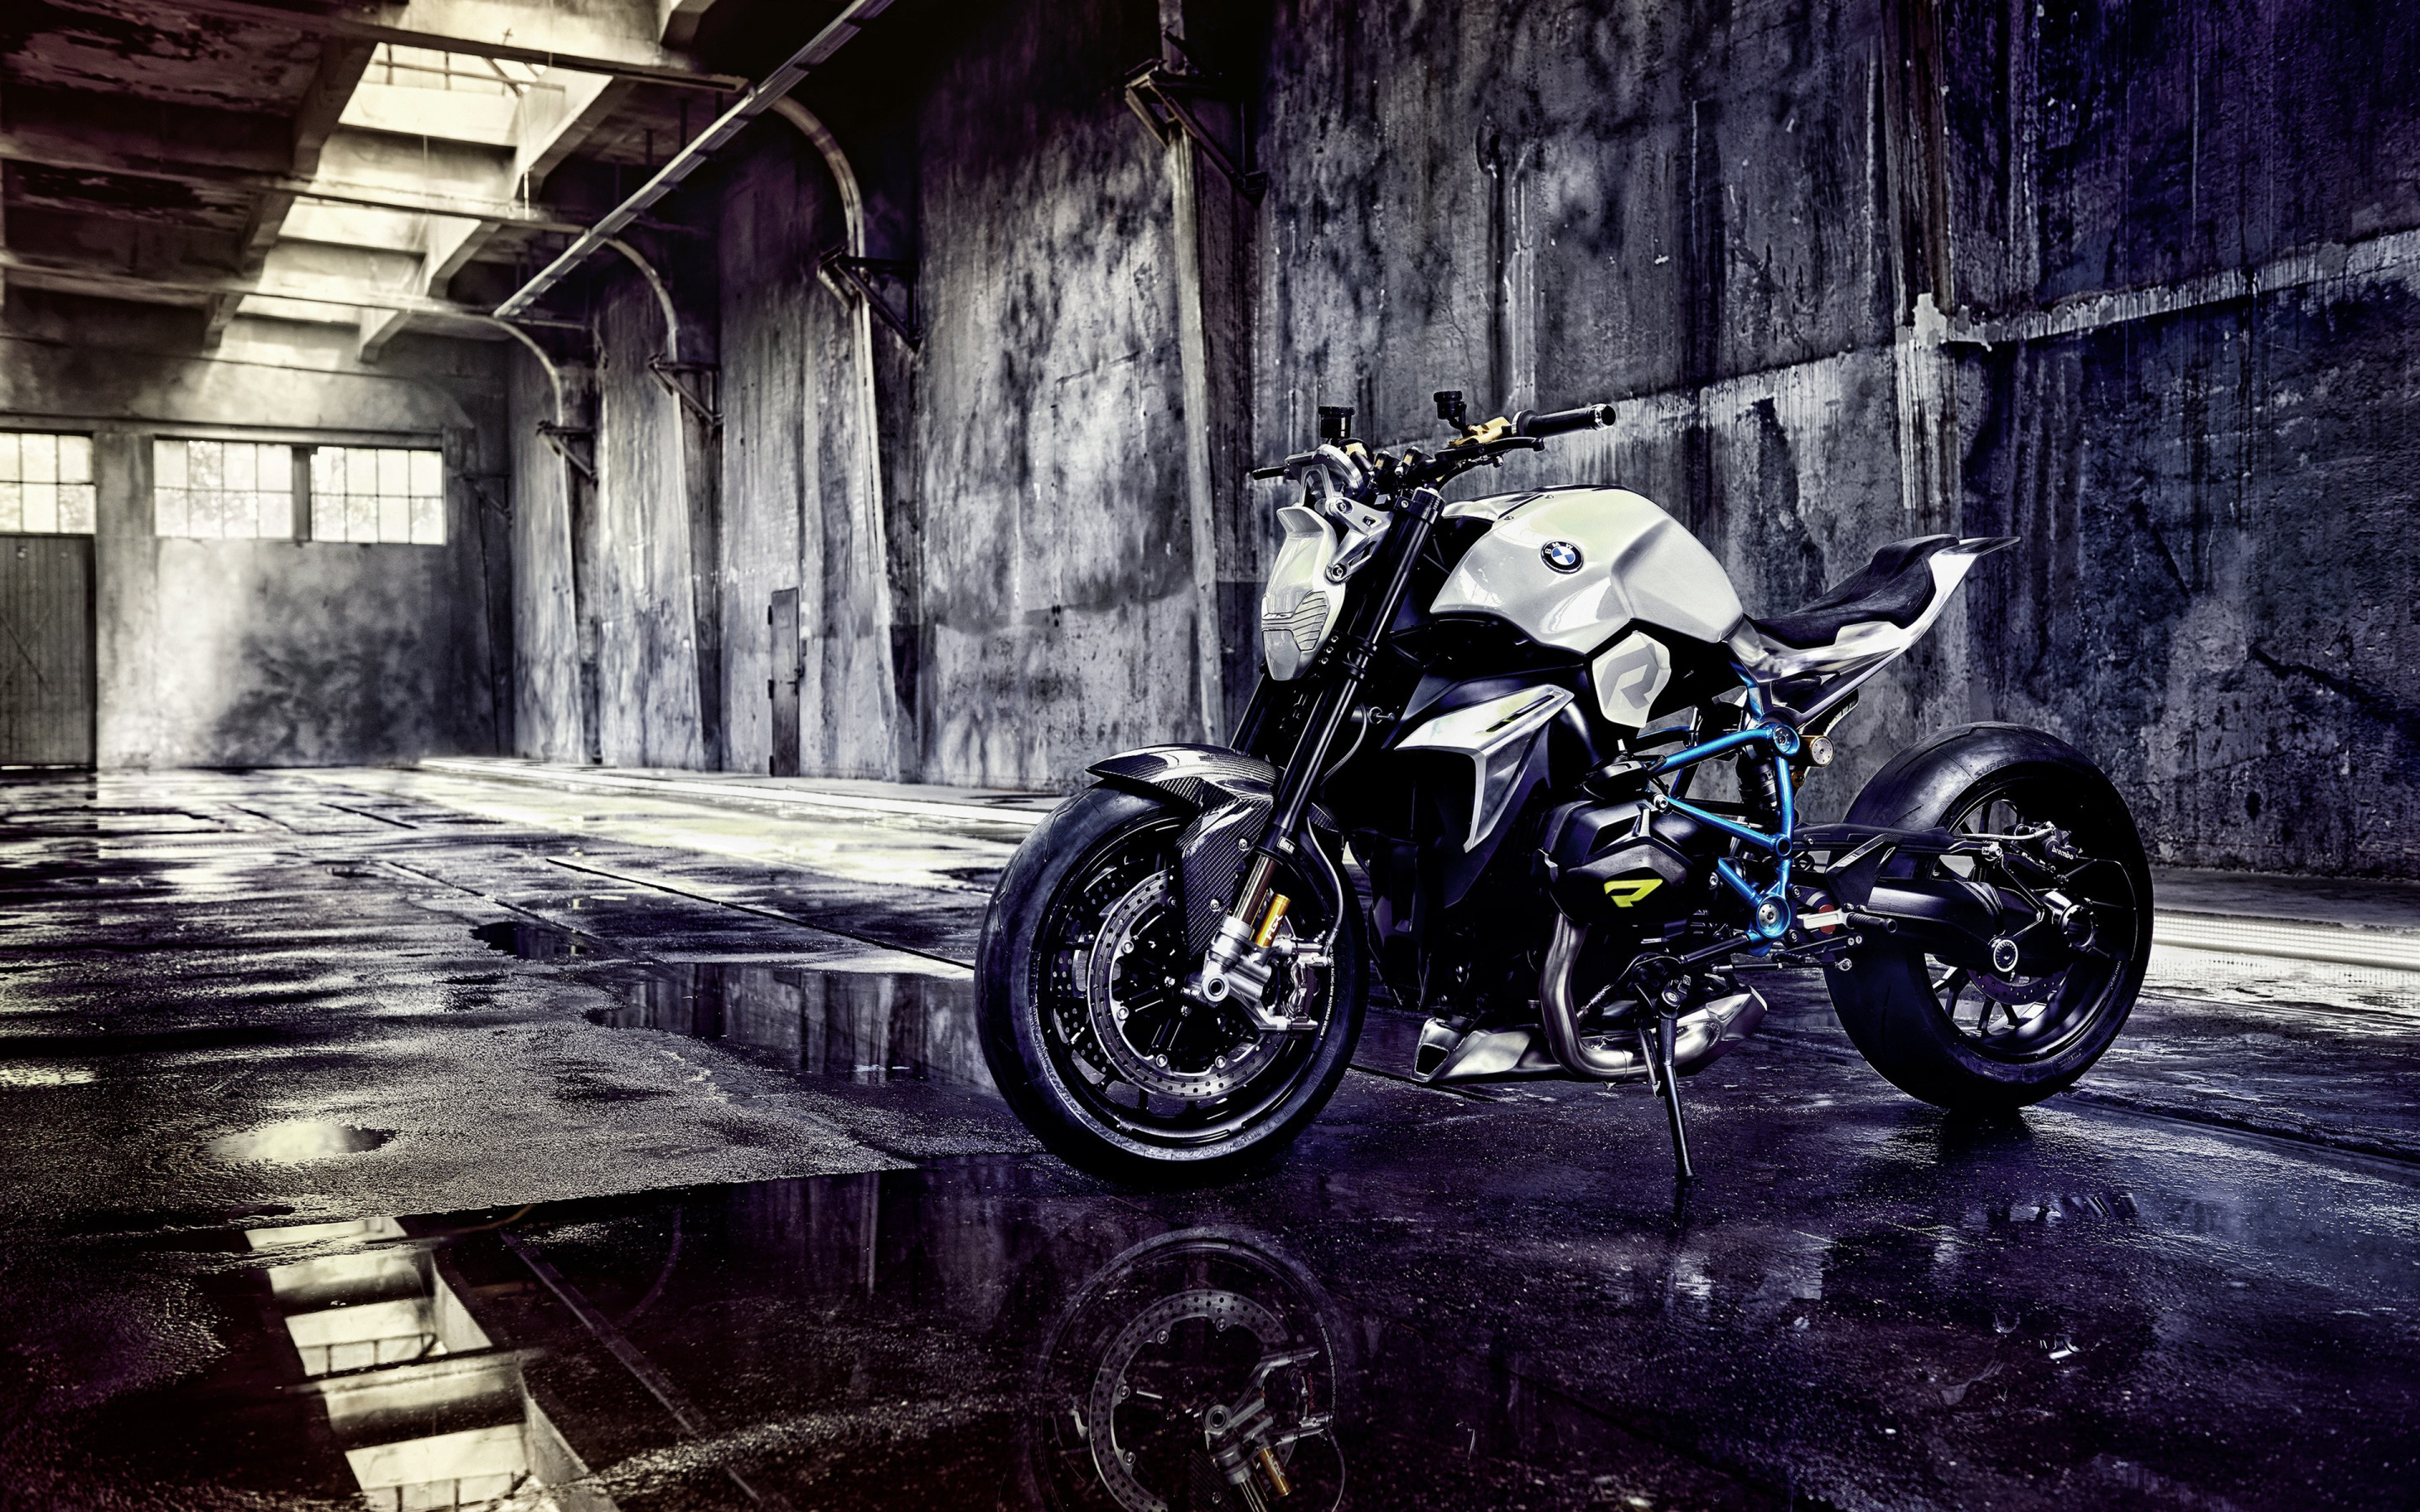 BMW Concept Roadster Motorcycle wallpaper 2880x1800